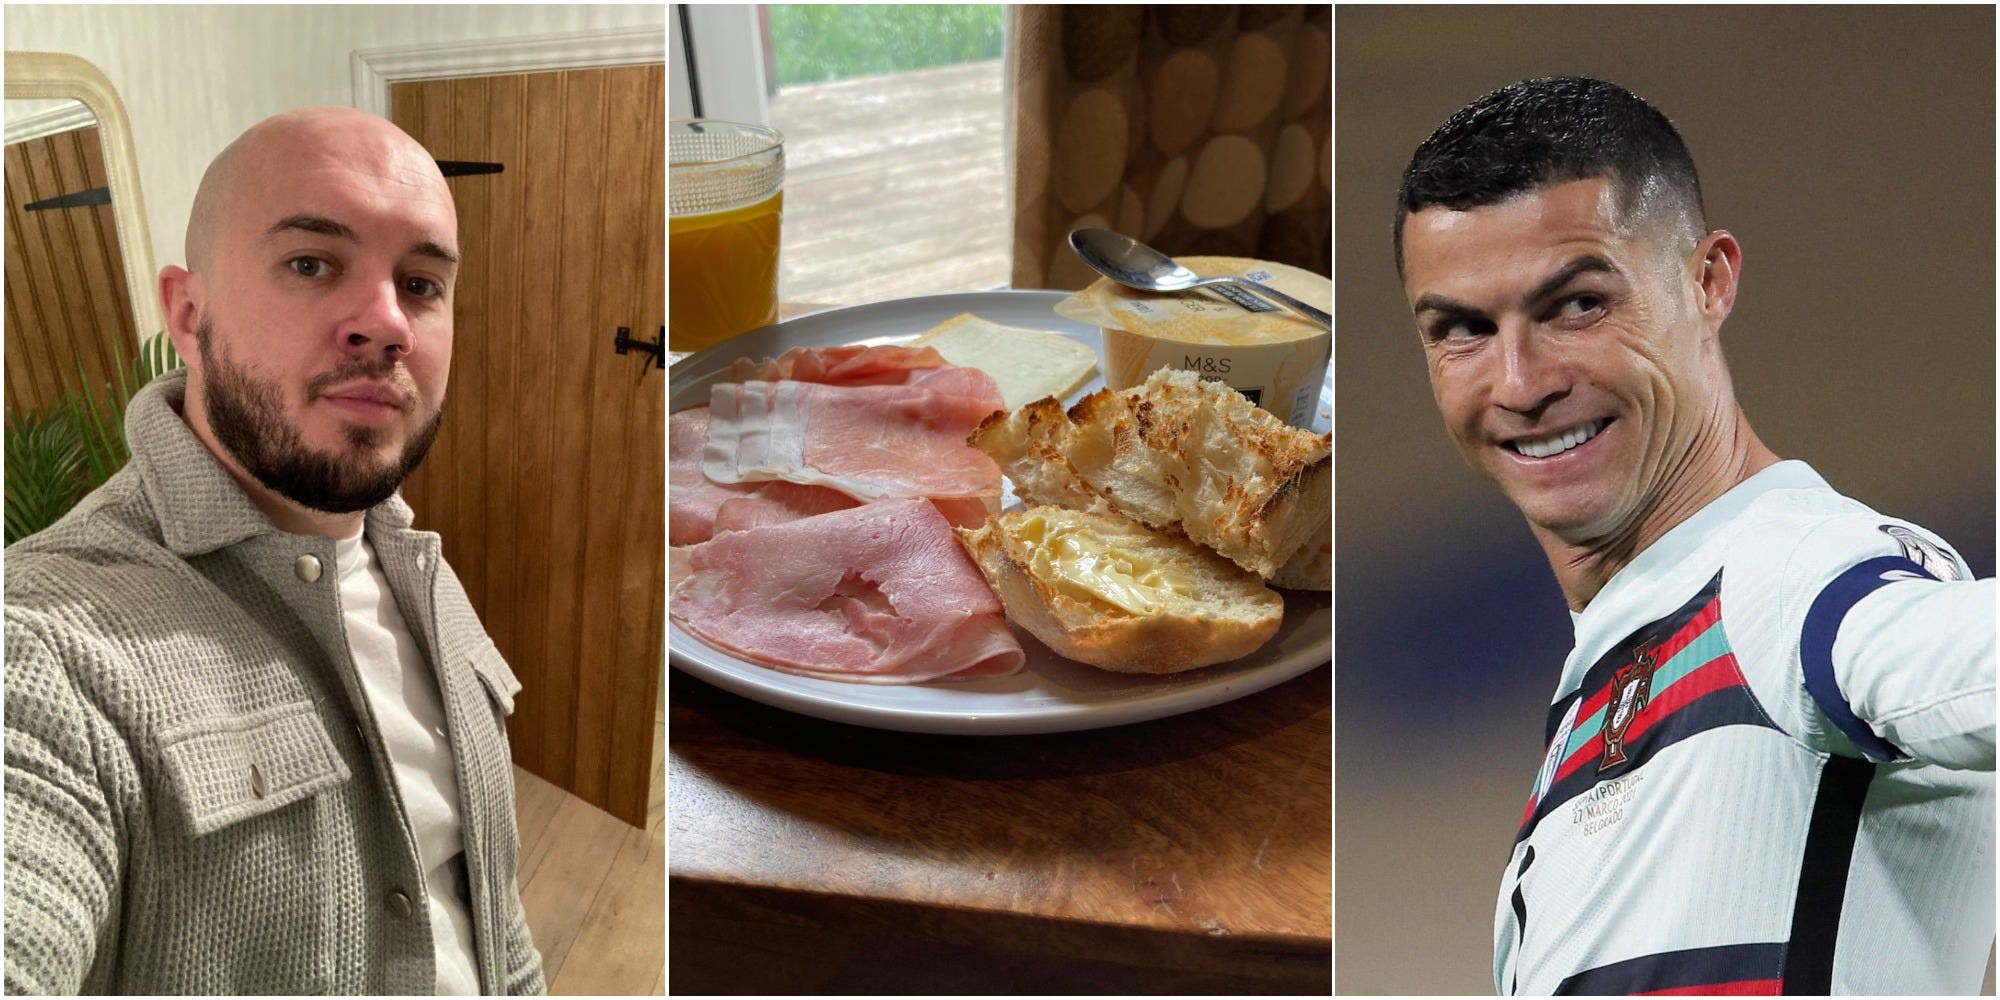 The author (left), his food (center), and Cristiano Ronaldo (right).